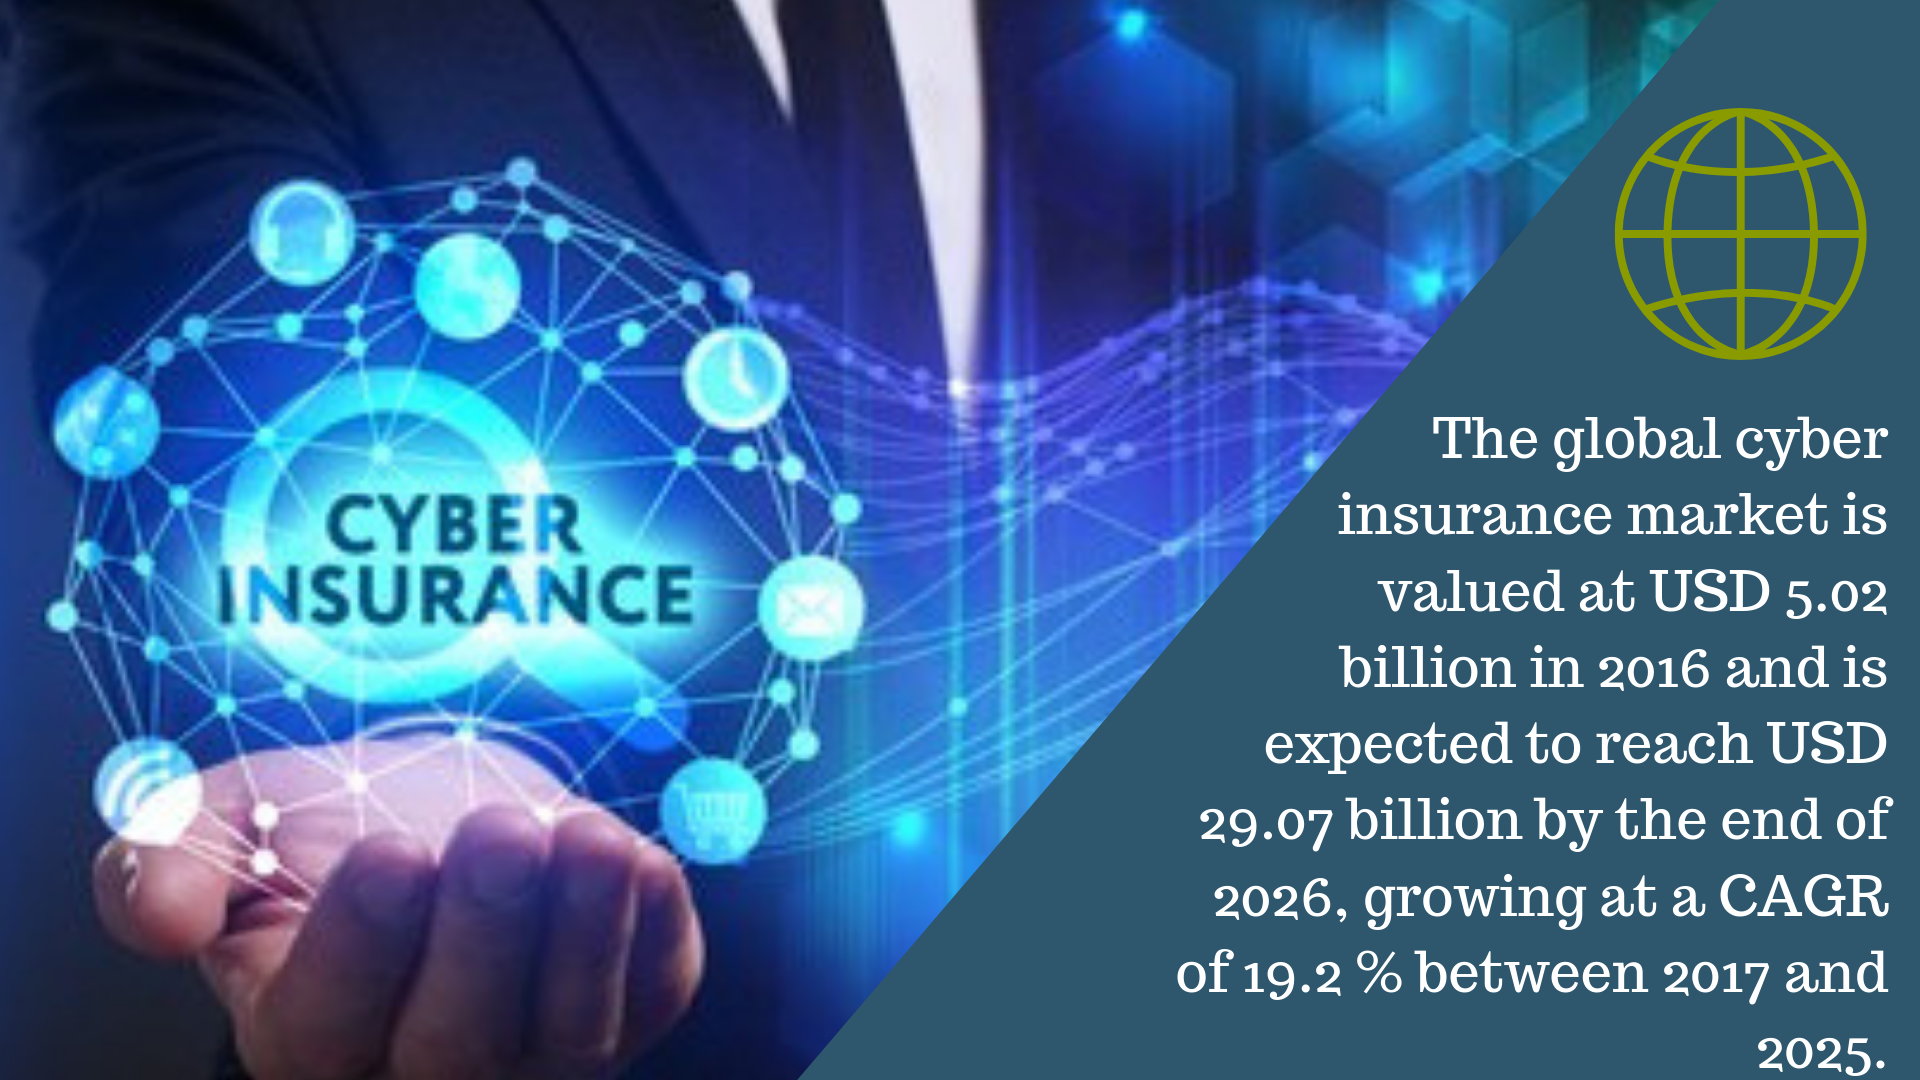 Cyber Insurance Market Analysis Growth And Forecast 2018 2026